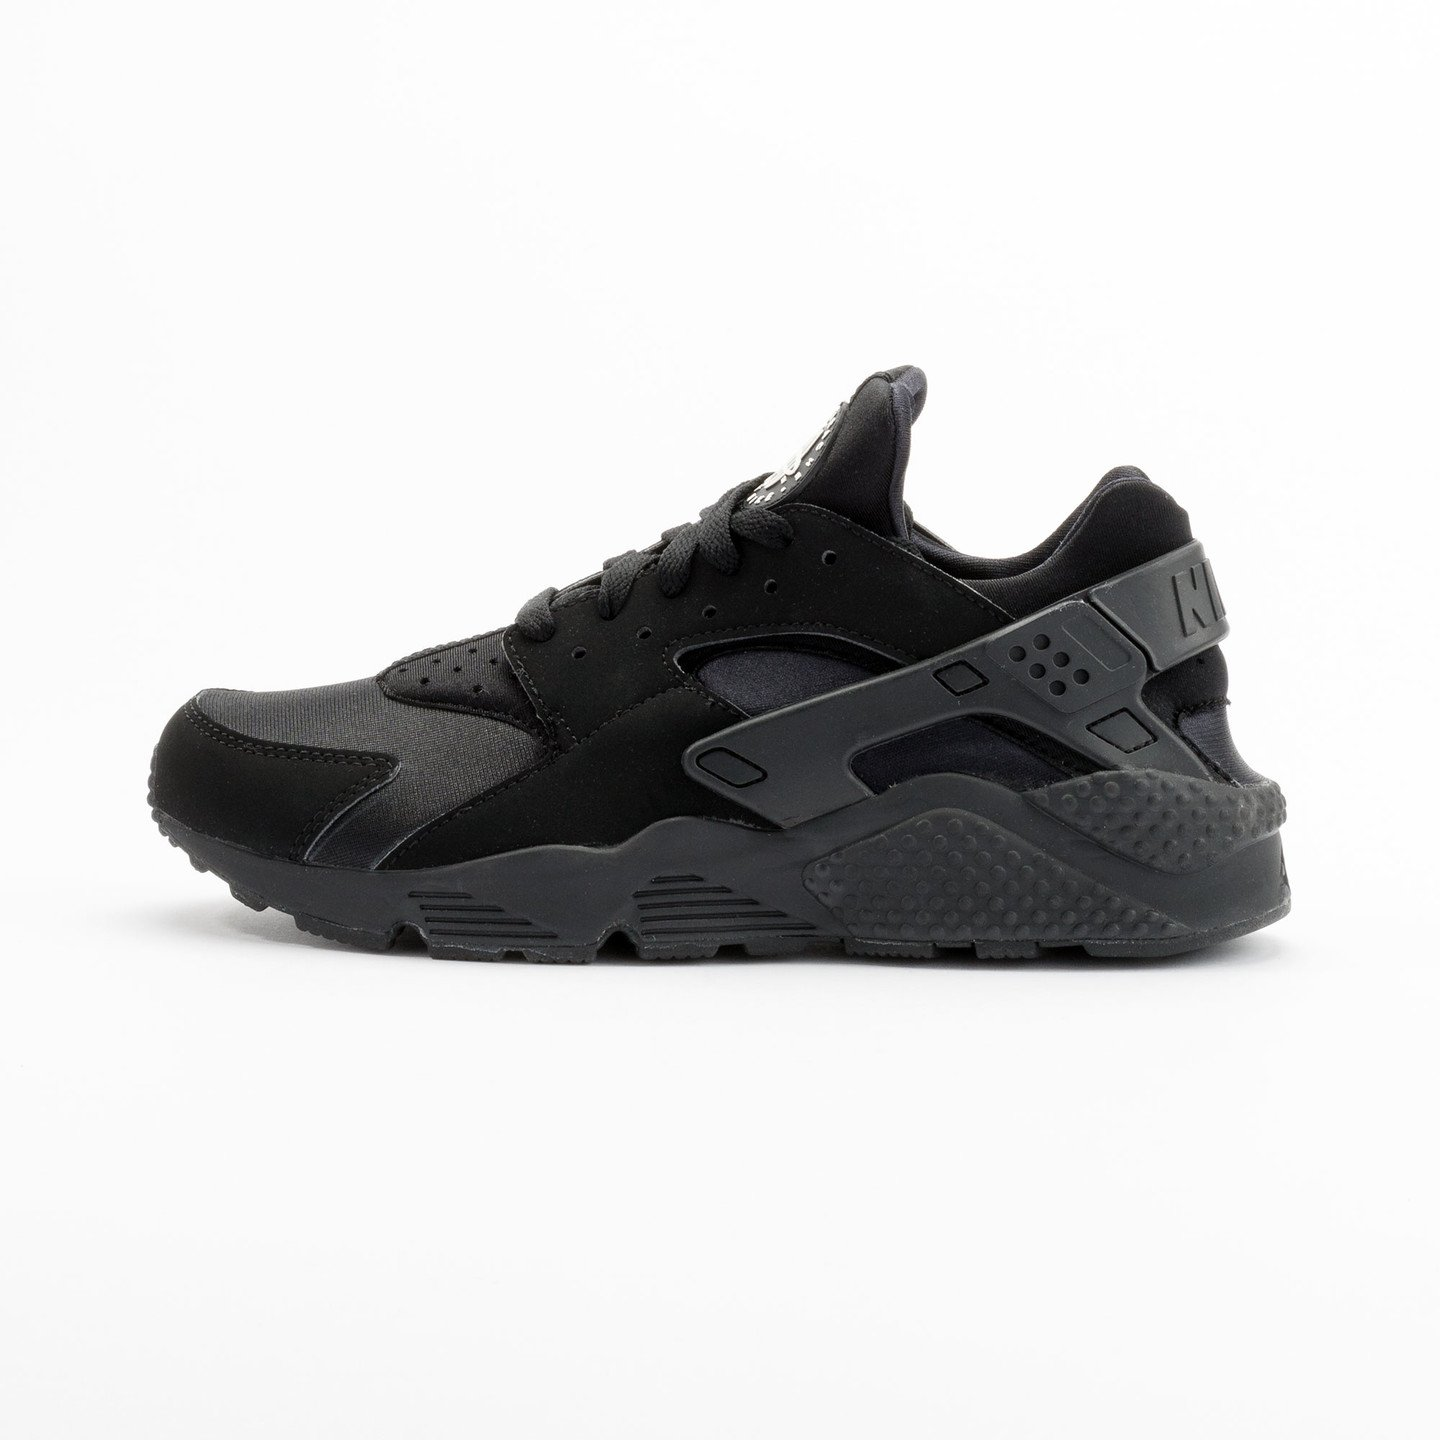 Nike Air Huarache Black/Black-White 318429-003-45